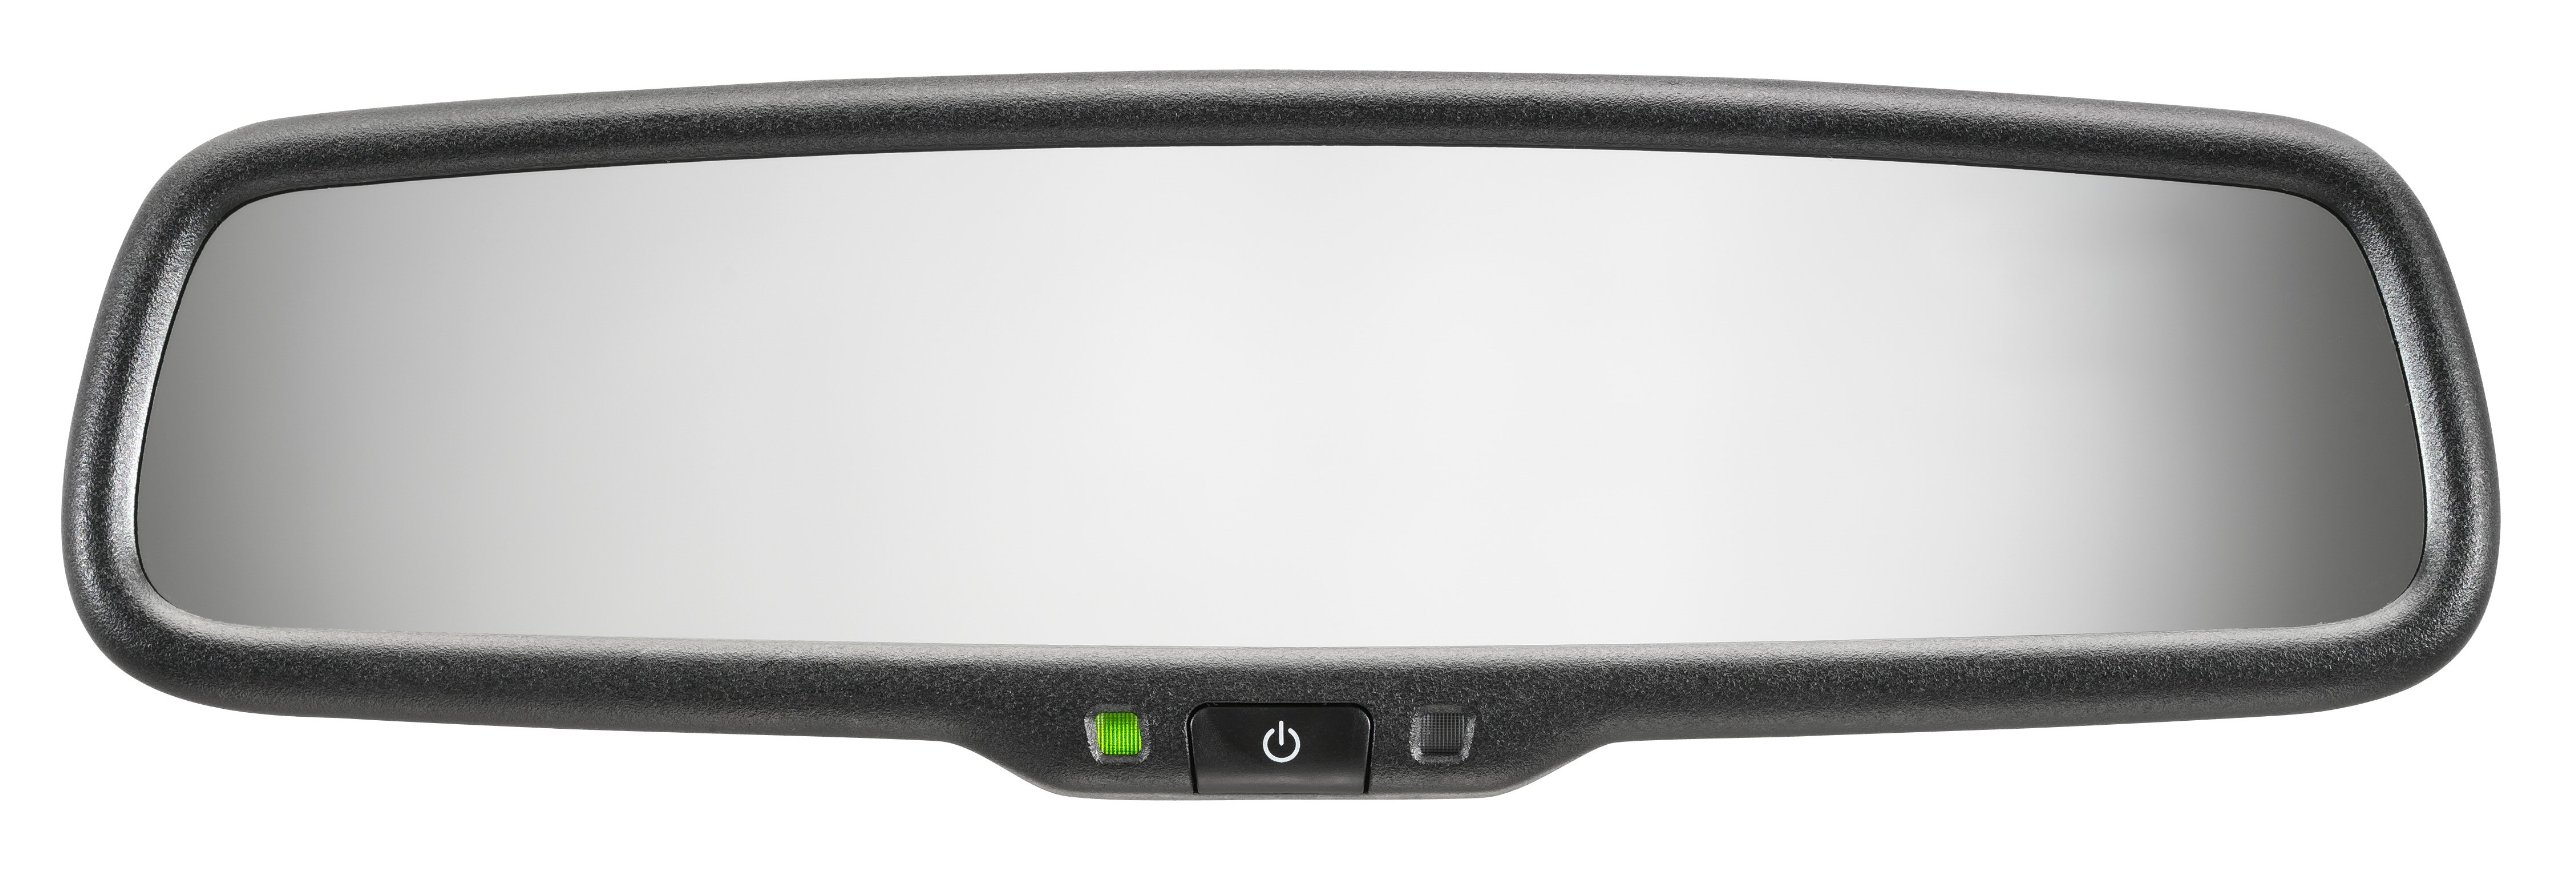 Get Quotations · Gentex 2ADMH Honda Auto-Dimming Rear View Mirror System